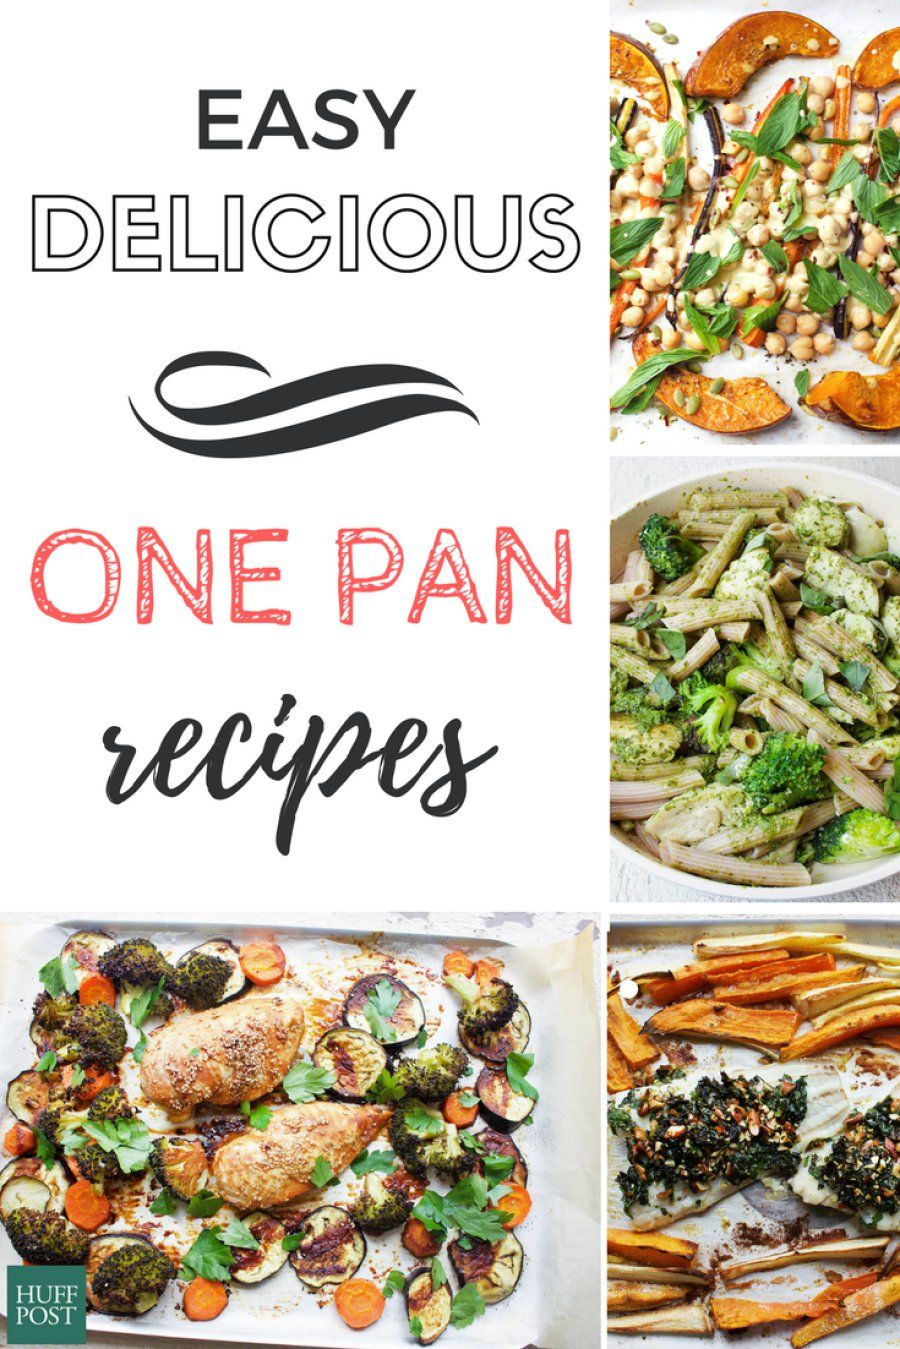 These One Pan Recipes Make Cooking And Cleaning A Cinch